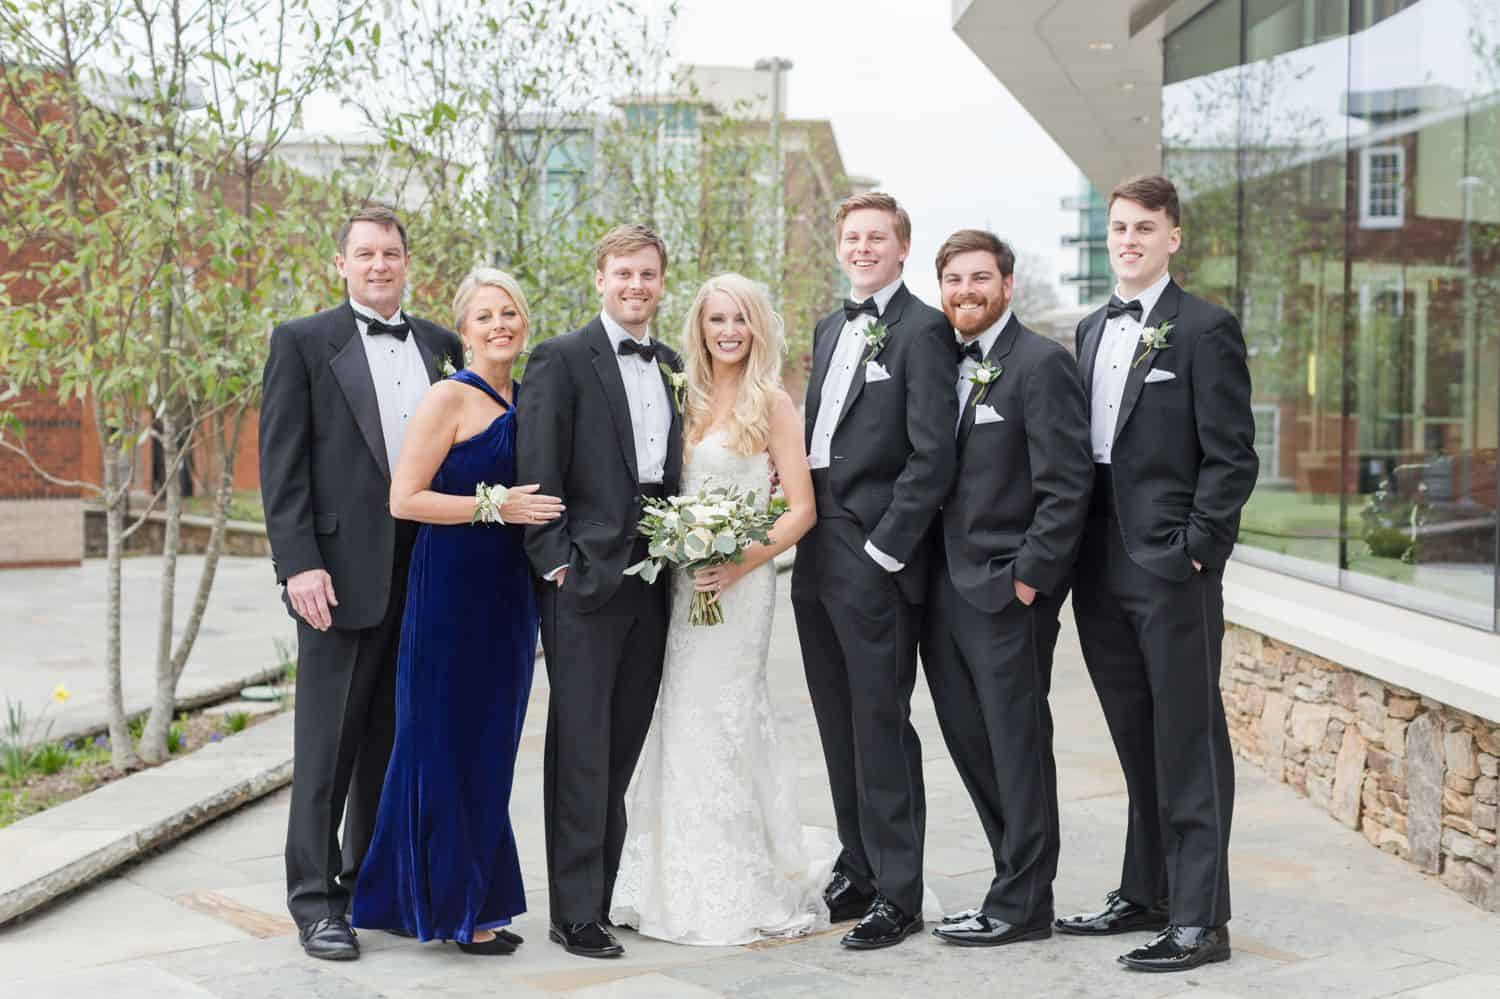 A bride and groom pose with family members for a wedding day portrait